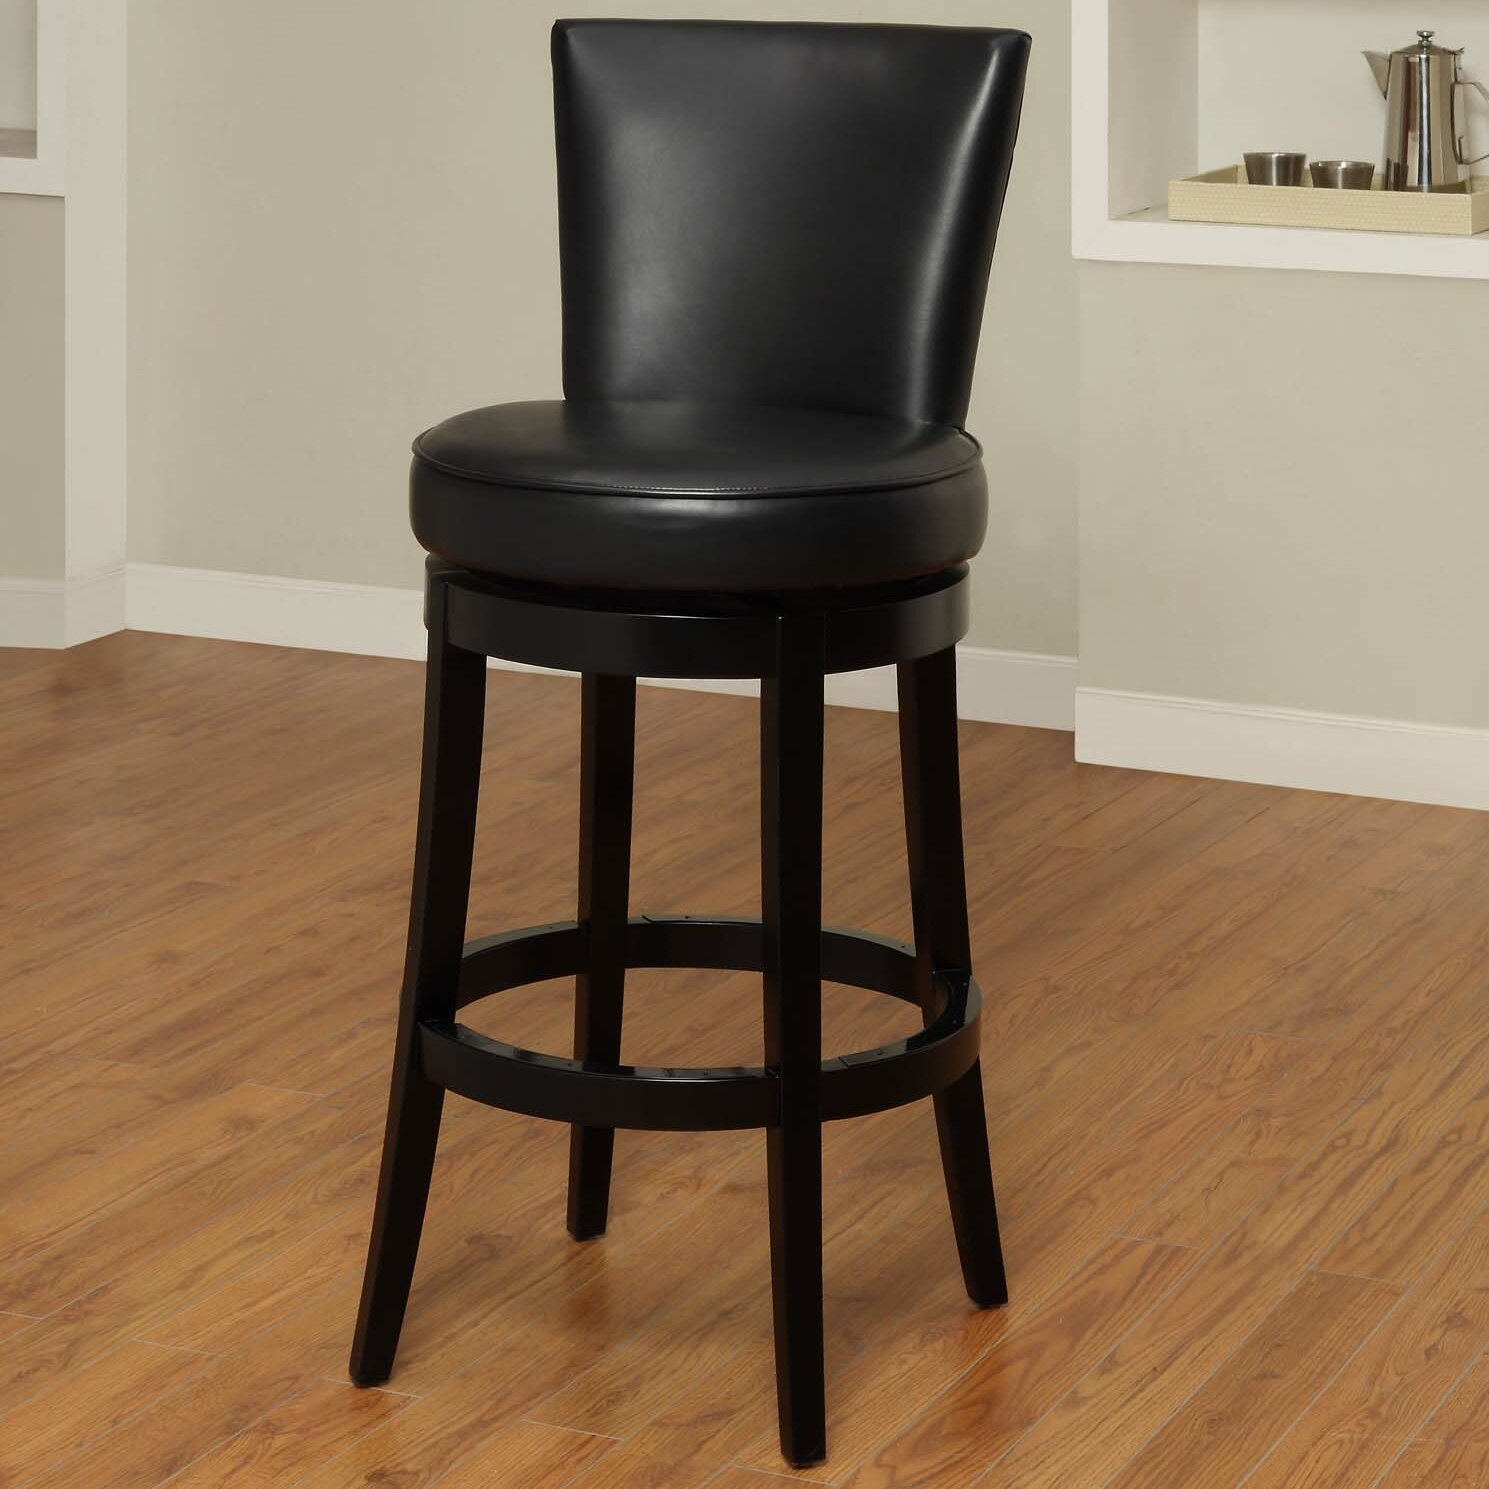 Darby Home Co Thornhill 26 Quot Swivel Bar Stool With Cushion